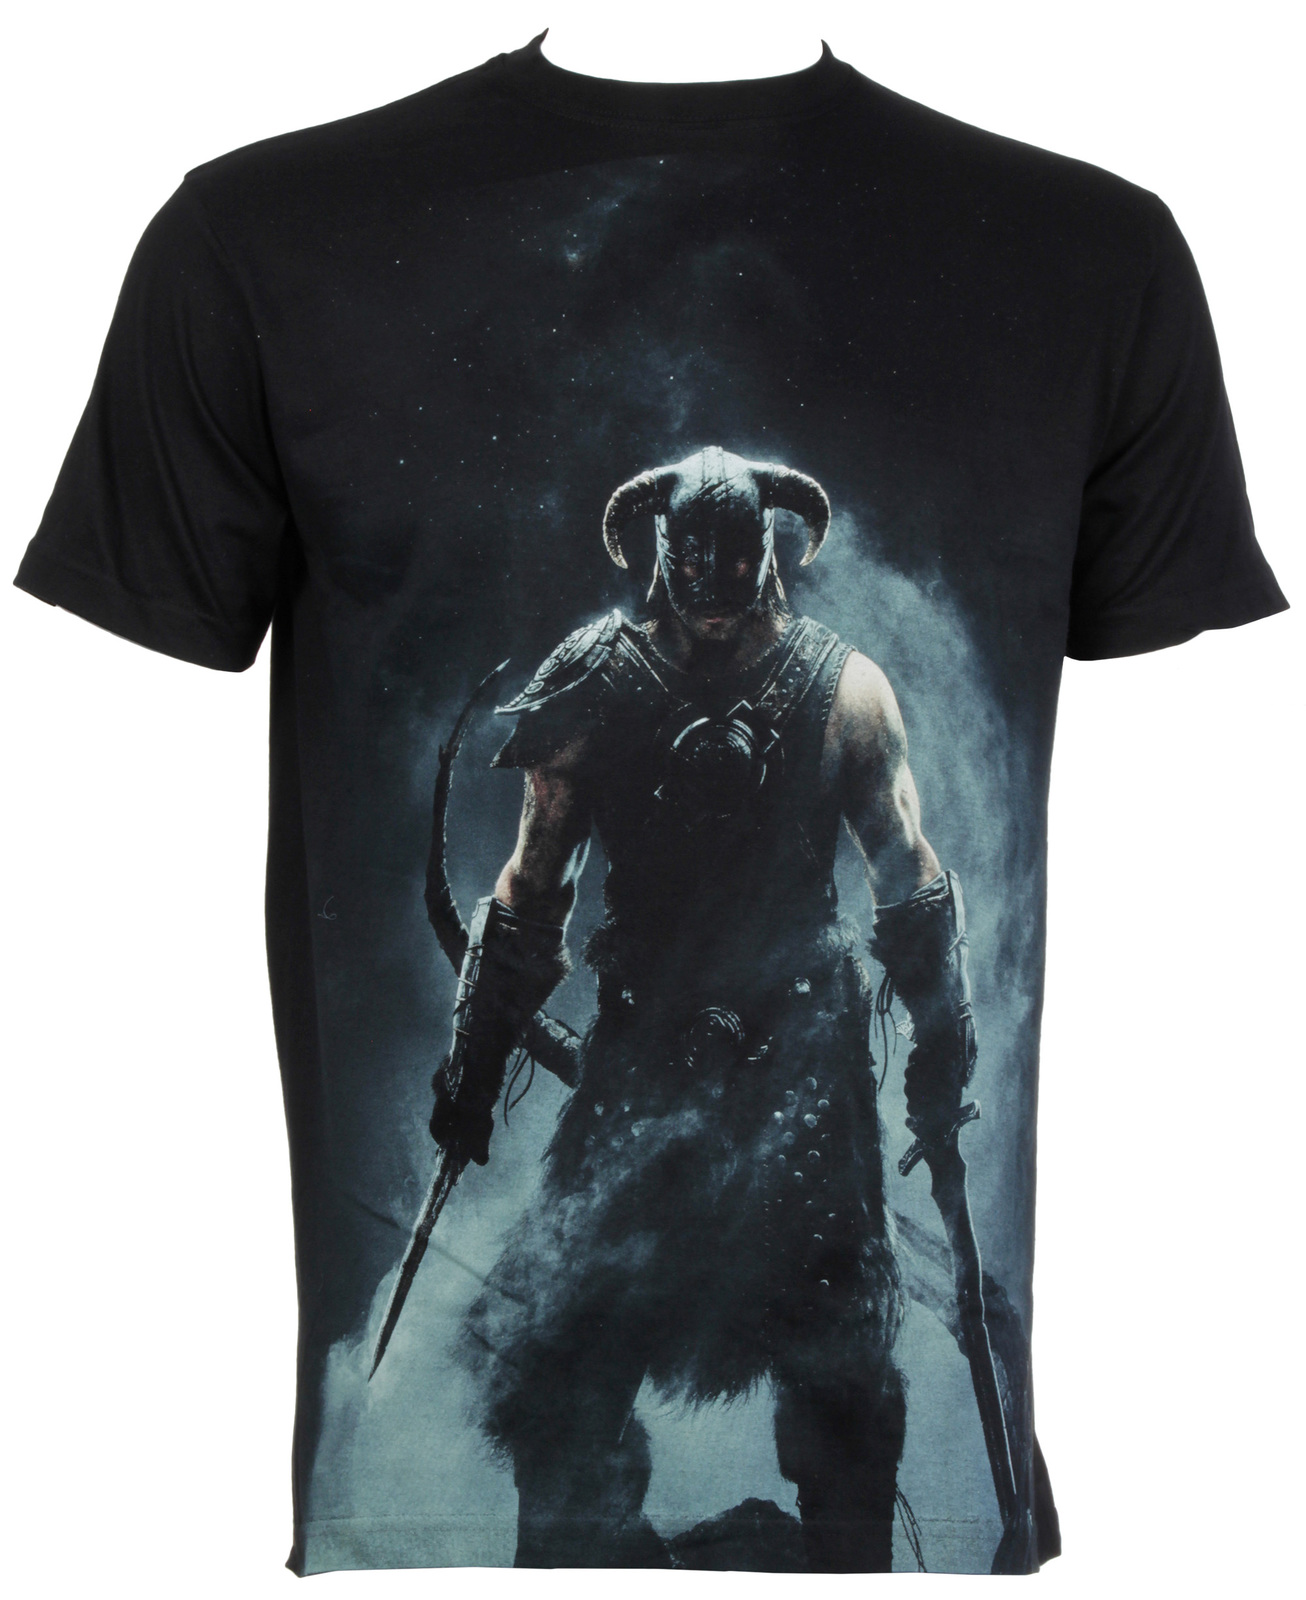 fcfe1c20 The Elder Scrolls V: Skyrim Dragonborn T-Shirt (Large) | Men's | at ...